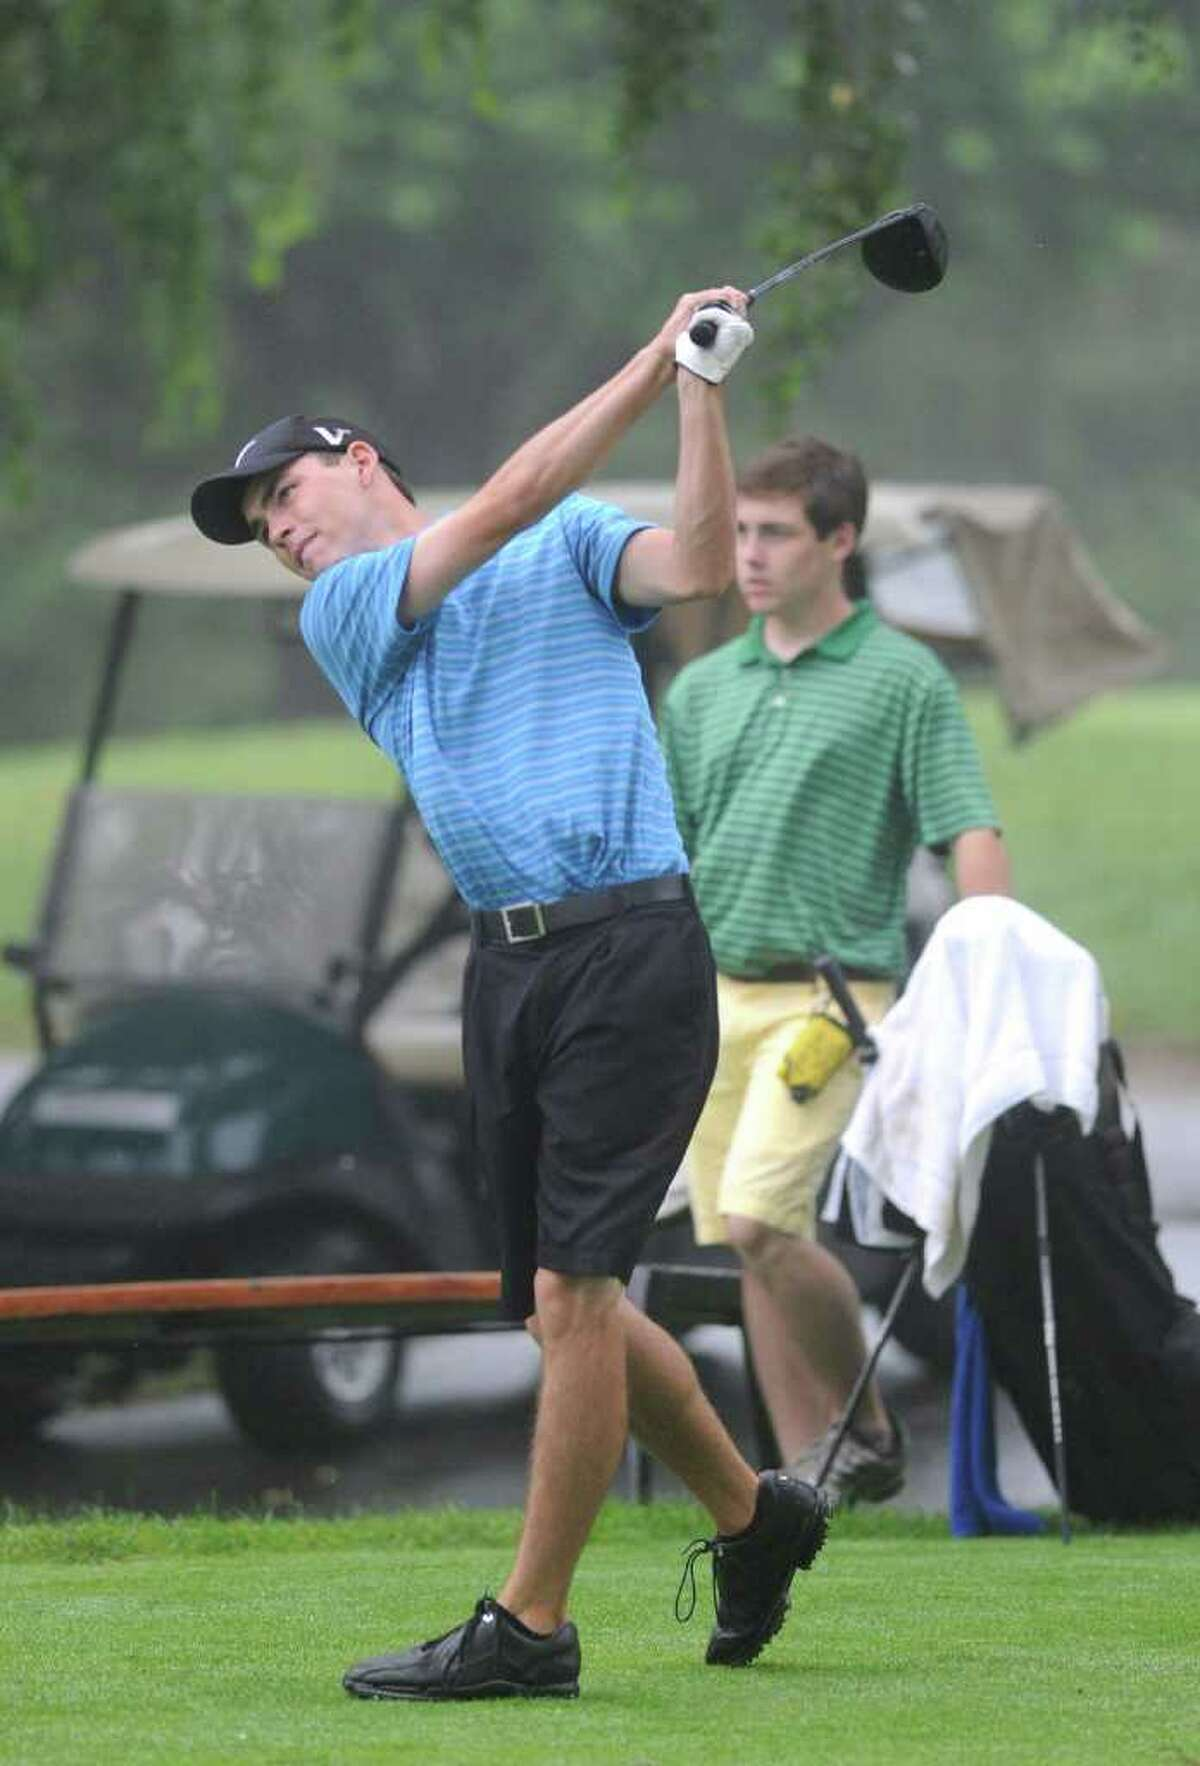 Greg Reilly drives off the first tee during quarterfinal match play at the 109th Connecticut Amateur Golf Championship, Rolling Hills Country Club, Wilton, Conn., Thursday morning, June 23, 2011..